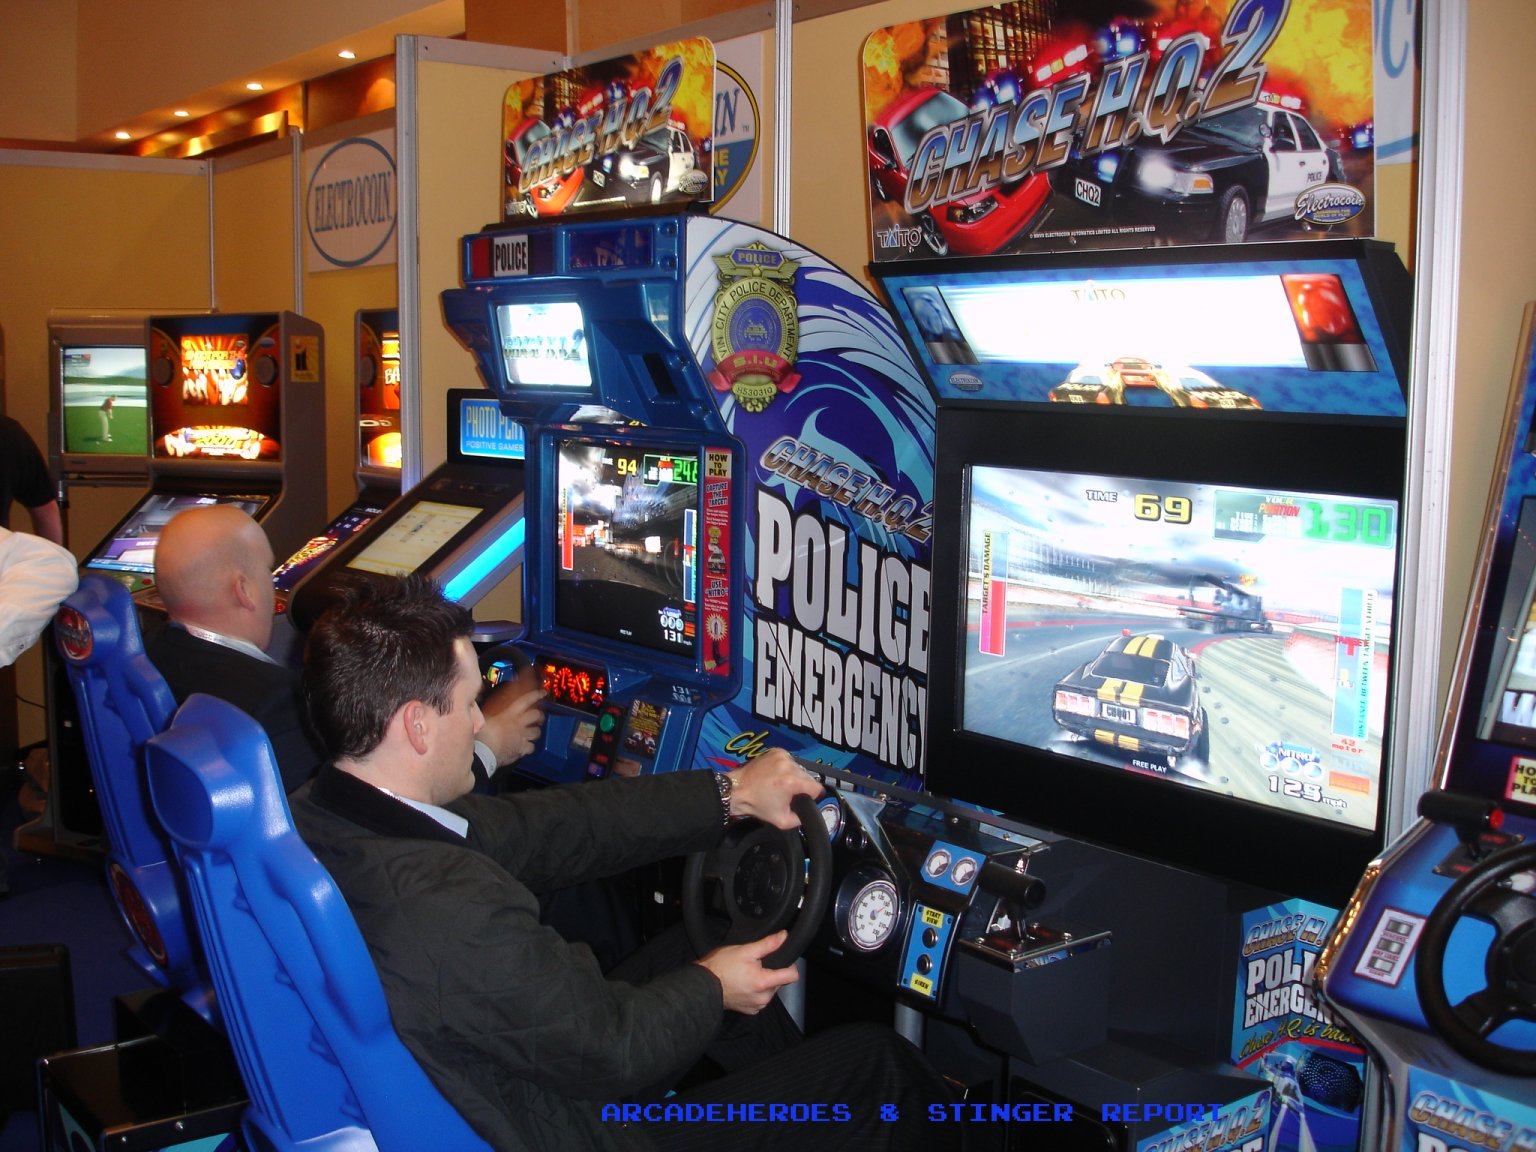 1942 Arcade Cabinet Chase Hq 2 Arcade Heroes